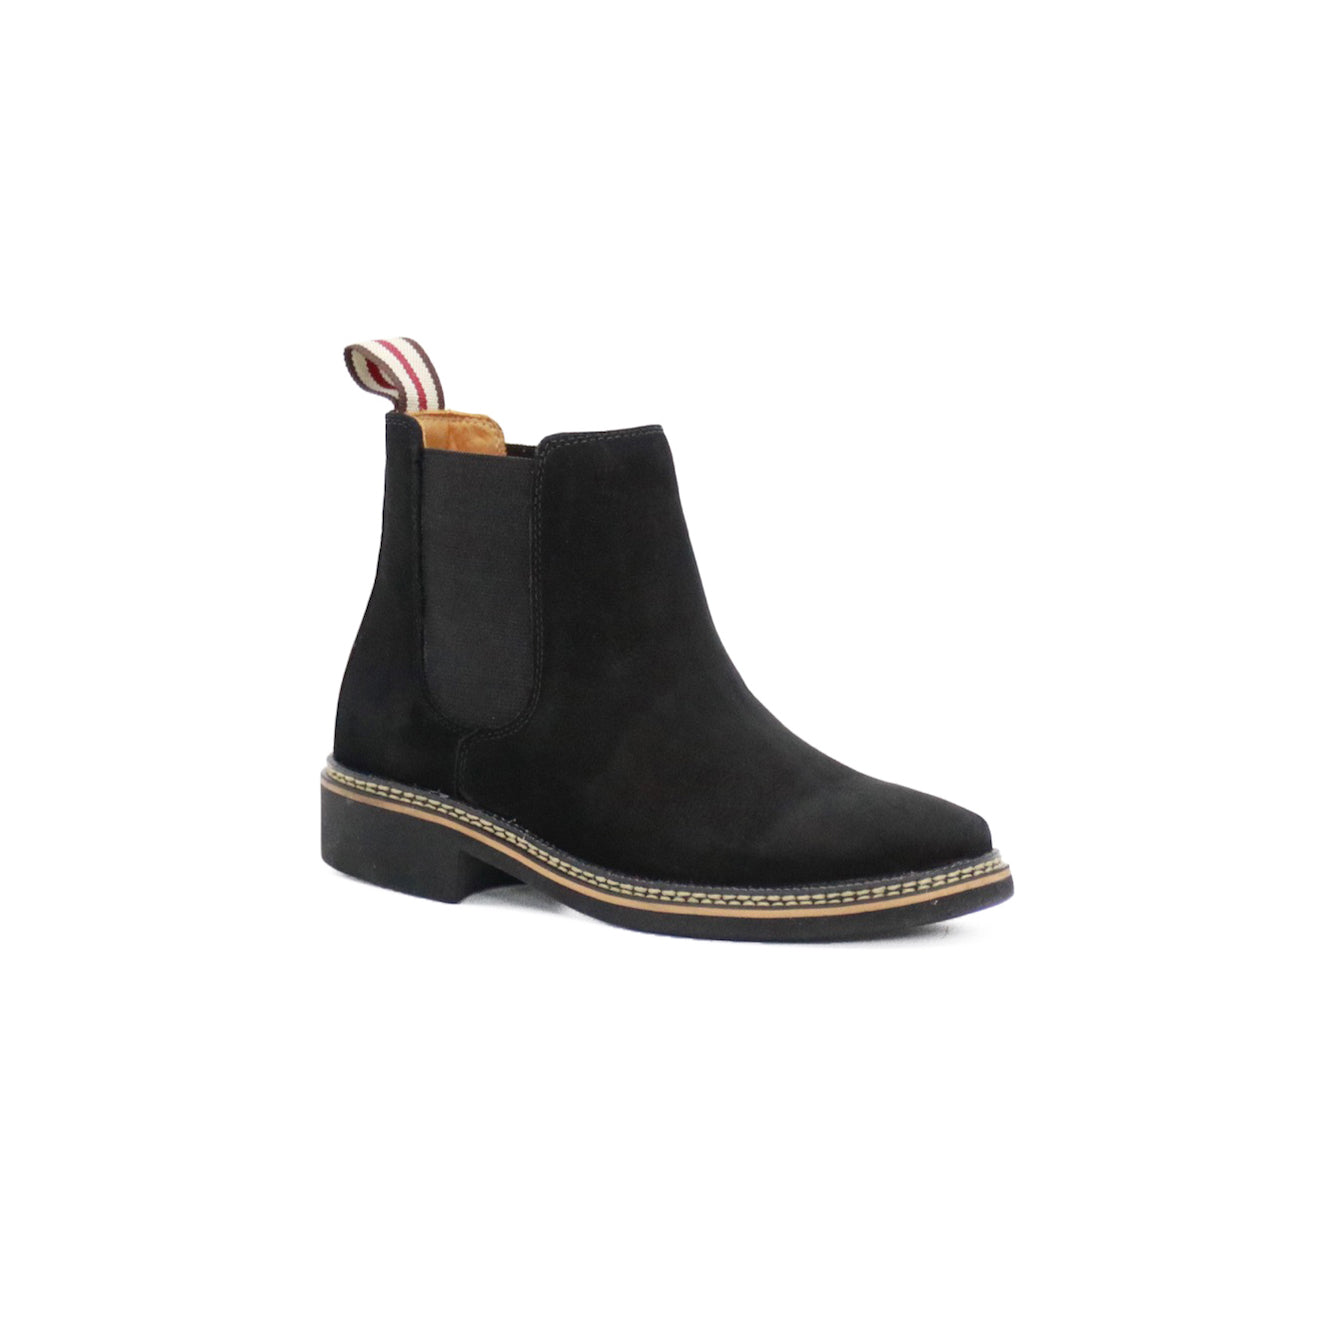 DE WULF Footwear, Kids chelsea boots, kids boots, kids black boots, kids winter shoes, kids shoes